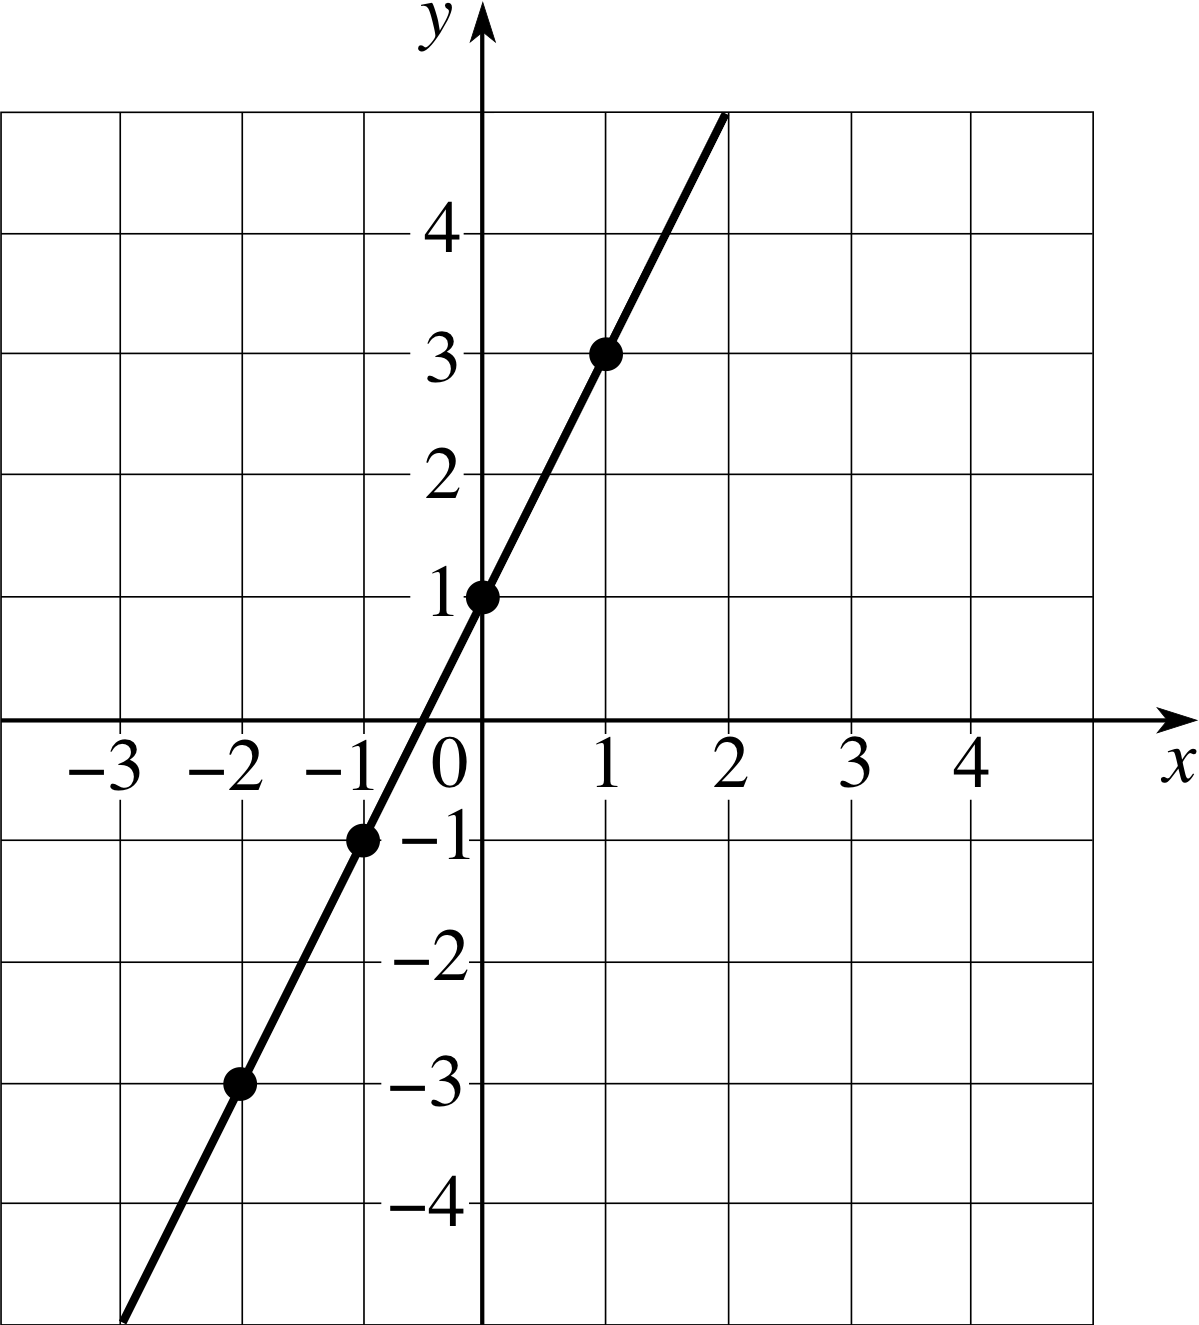 2.2 Equation of a straight line - gradient and yintercept